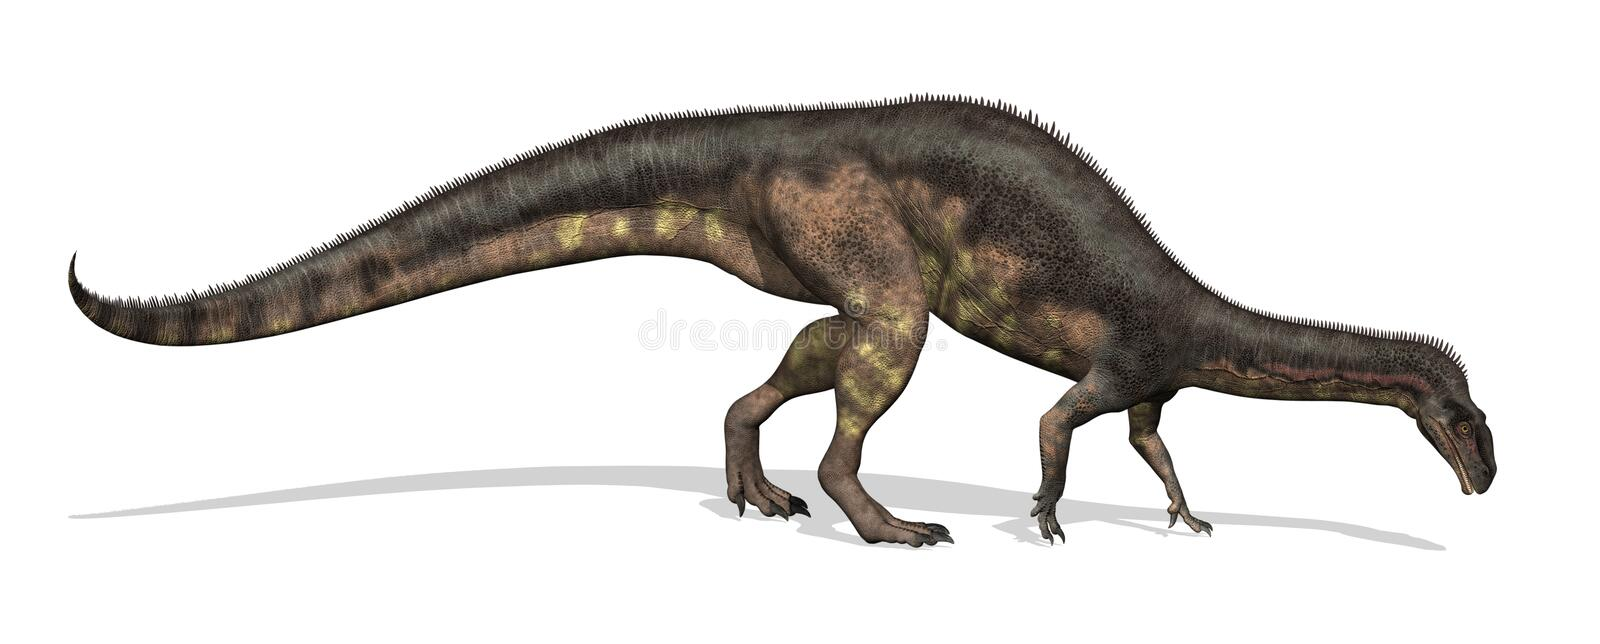 dinosaurplateosaurus stock illustrationer